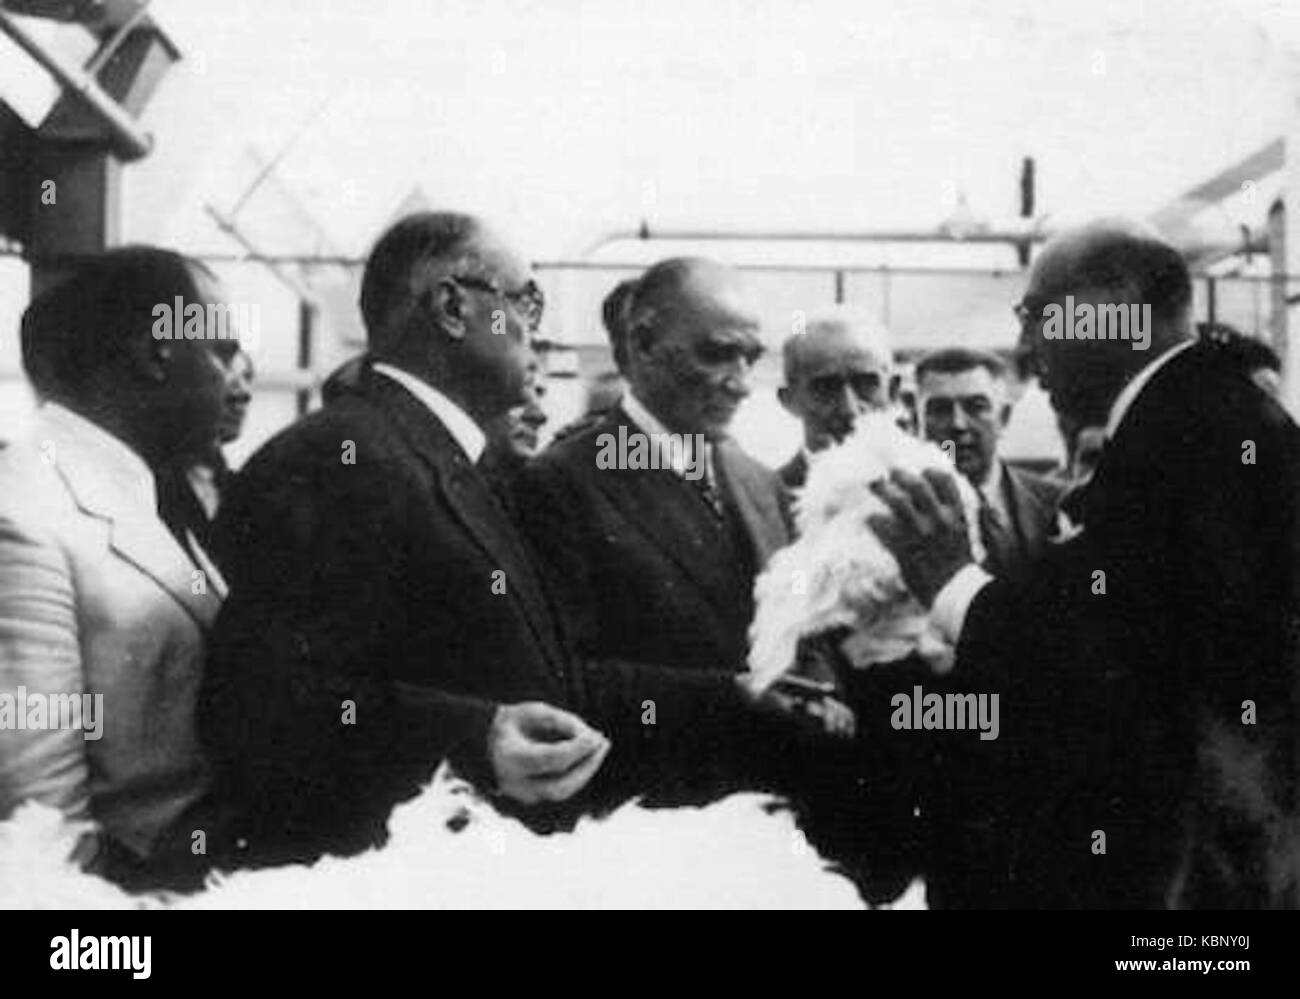 Atatürk (centre) accompanied by Bayar (to his left) and İnönü (to his right) at the Sümerbank - Stock Image